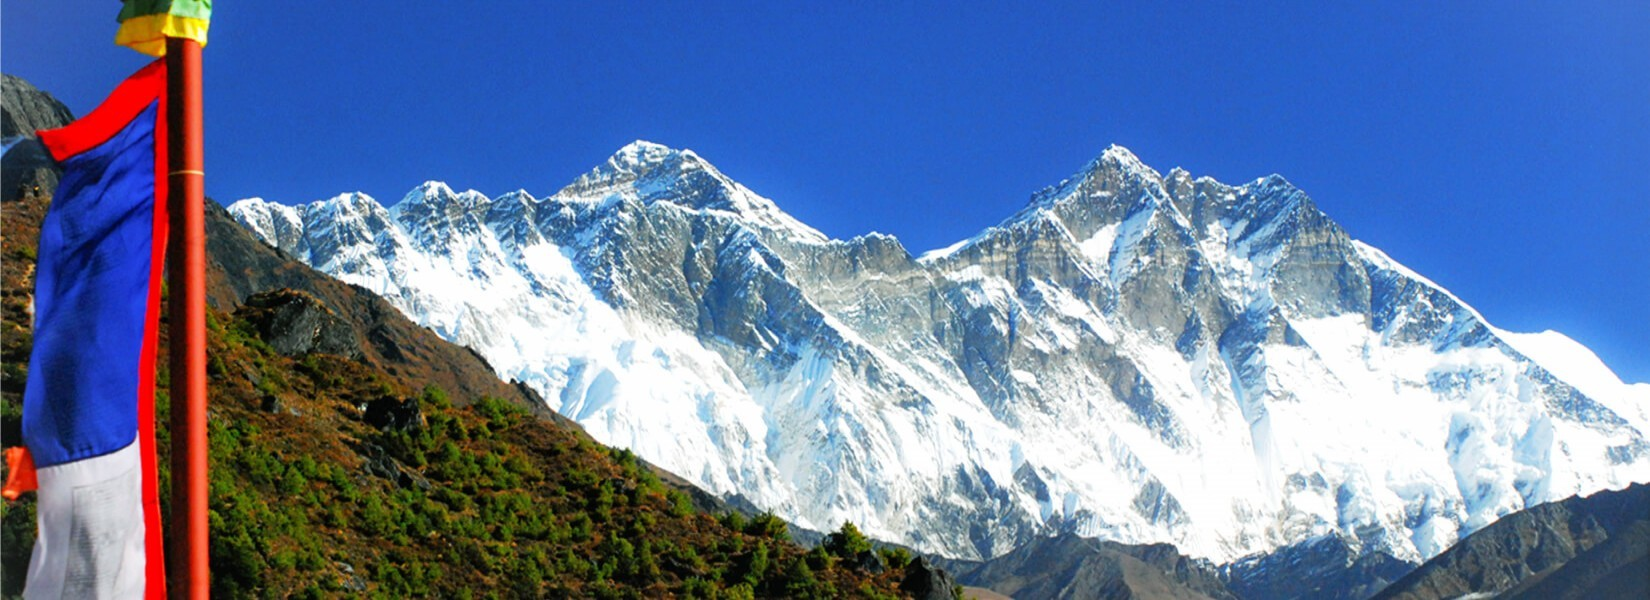 Nepal Everest View